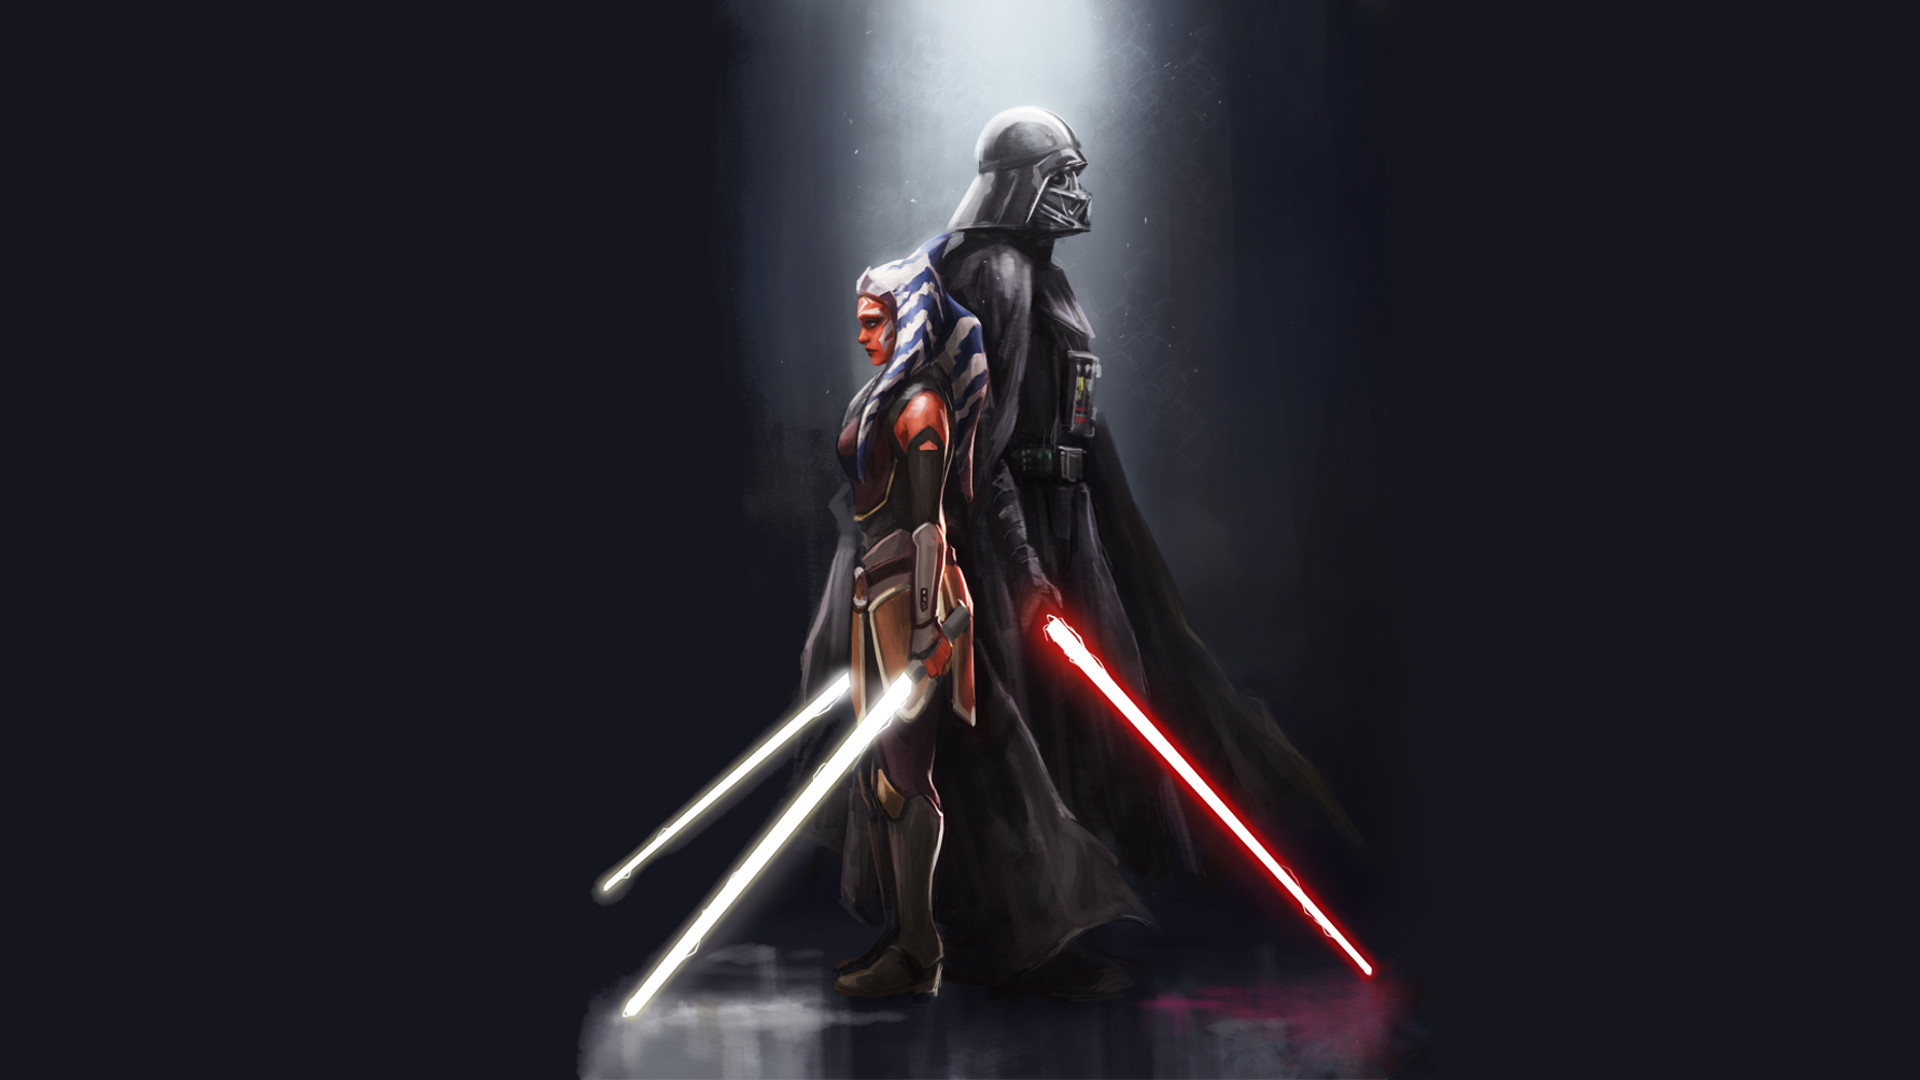 Darth Vader Wallpaper (76+ Pictures